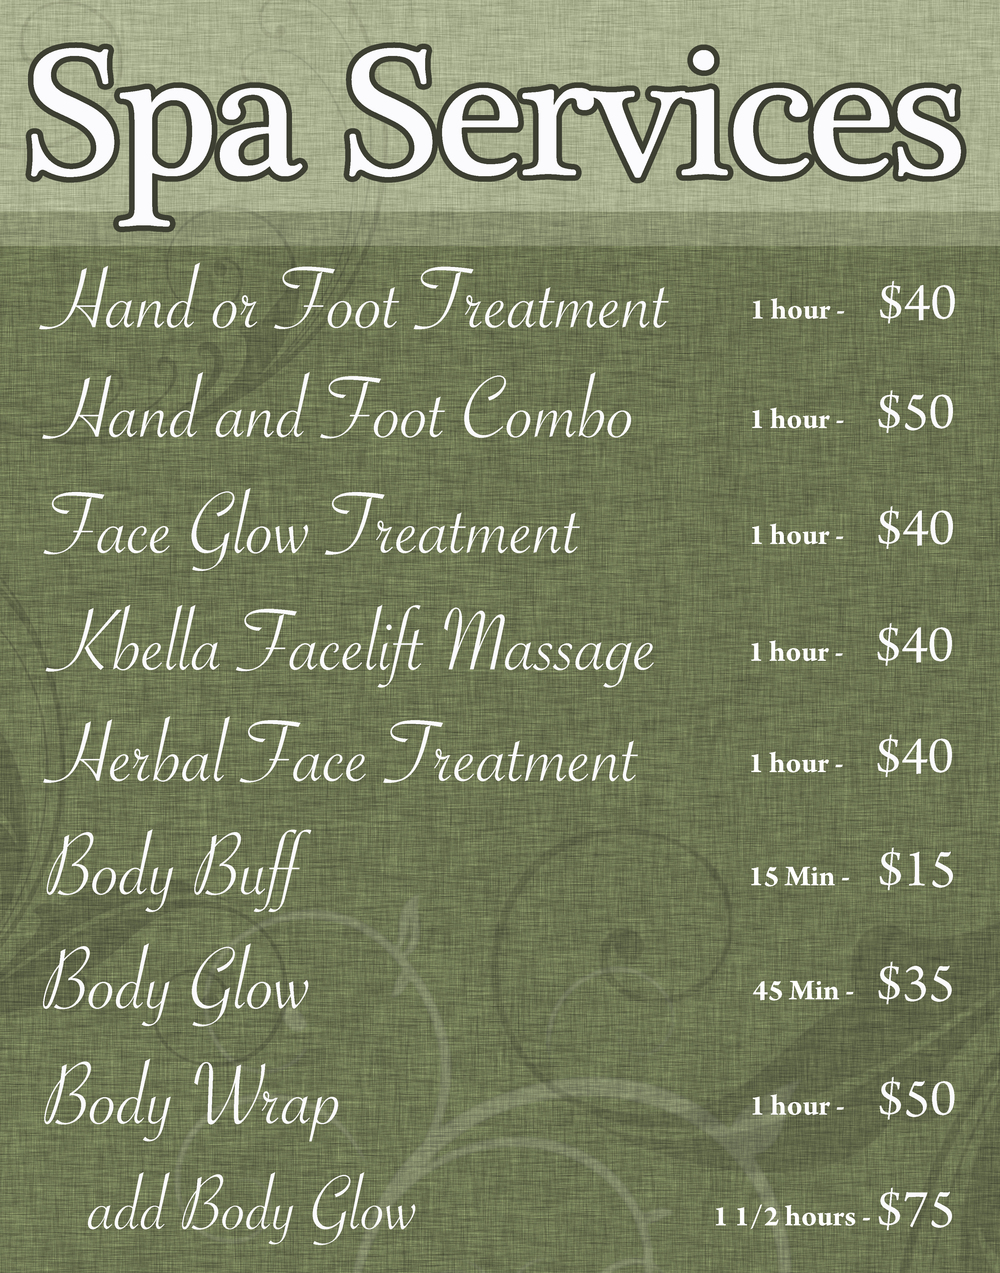 Spa Services (middle).jpg